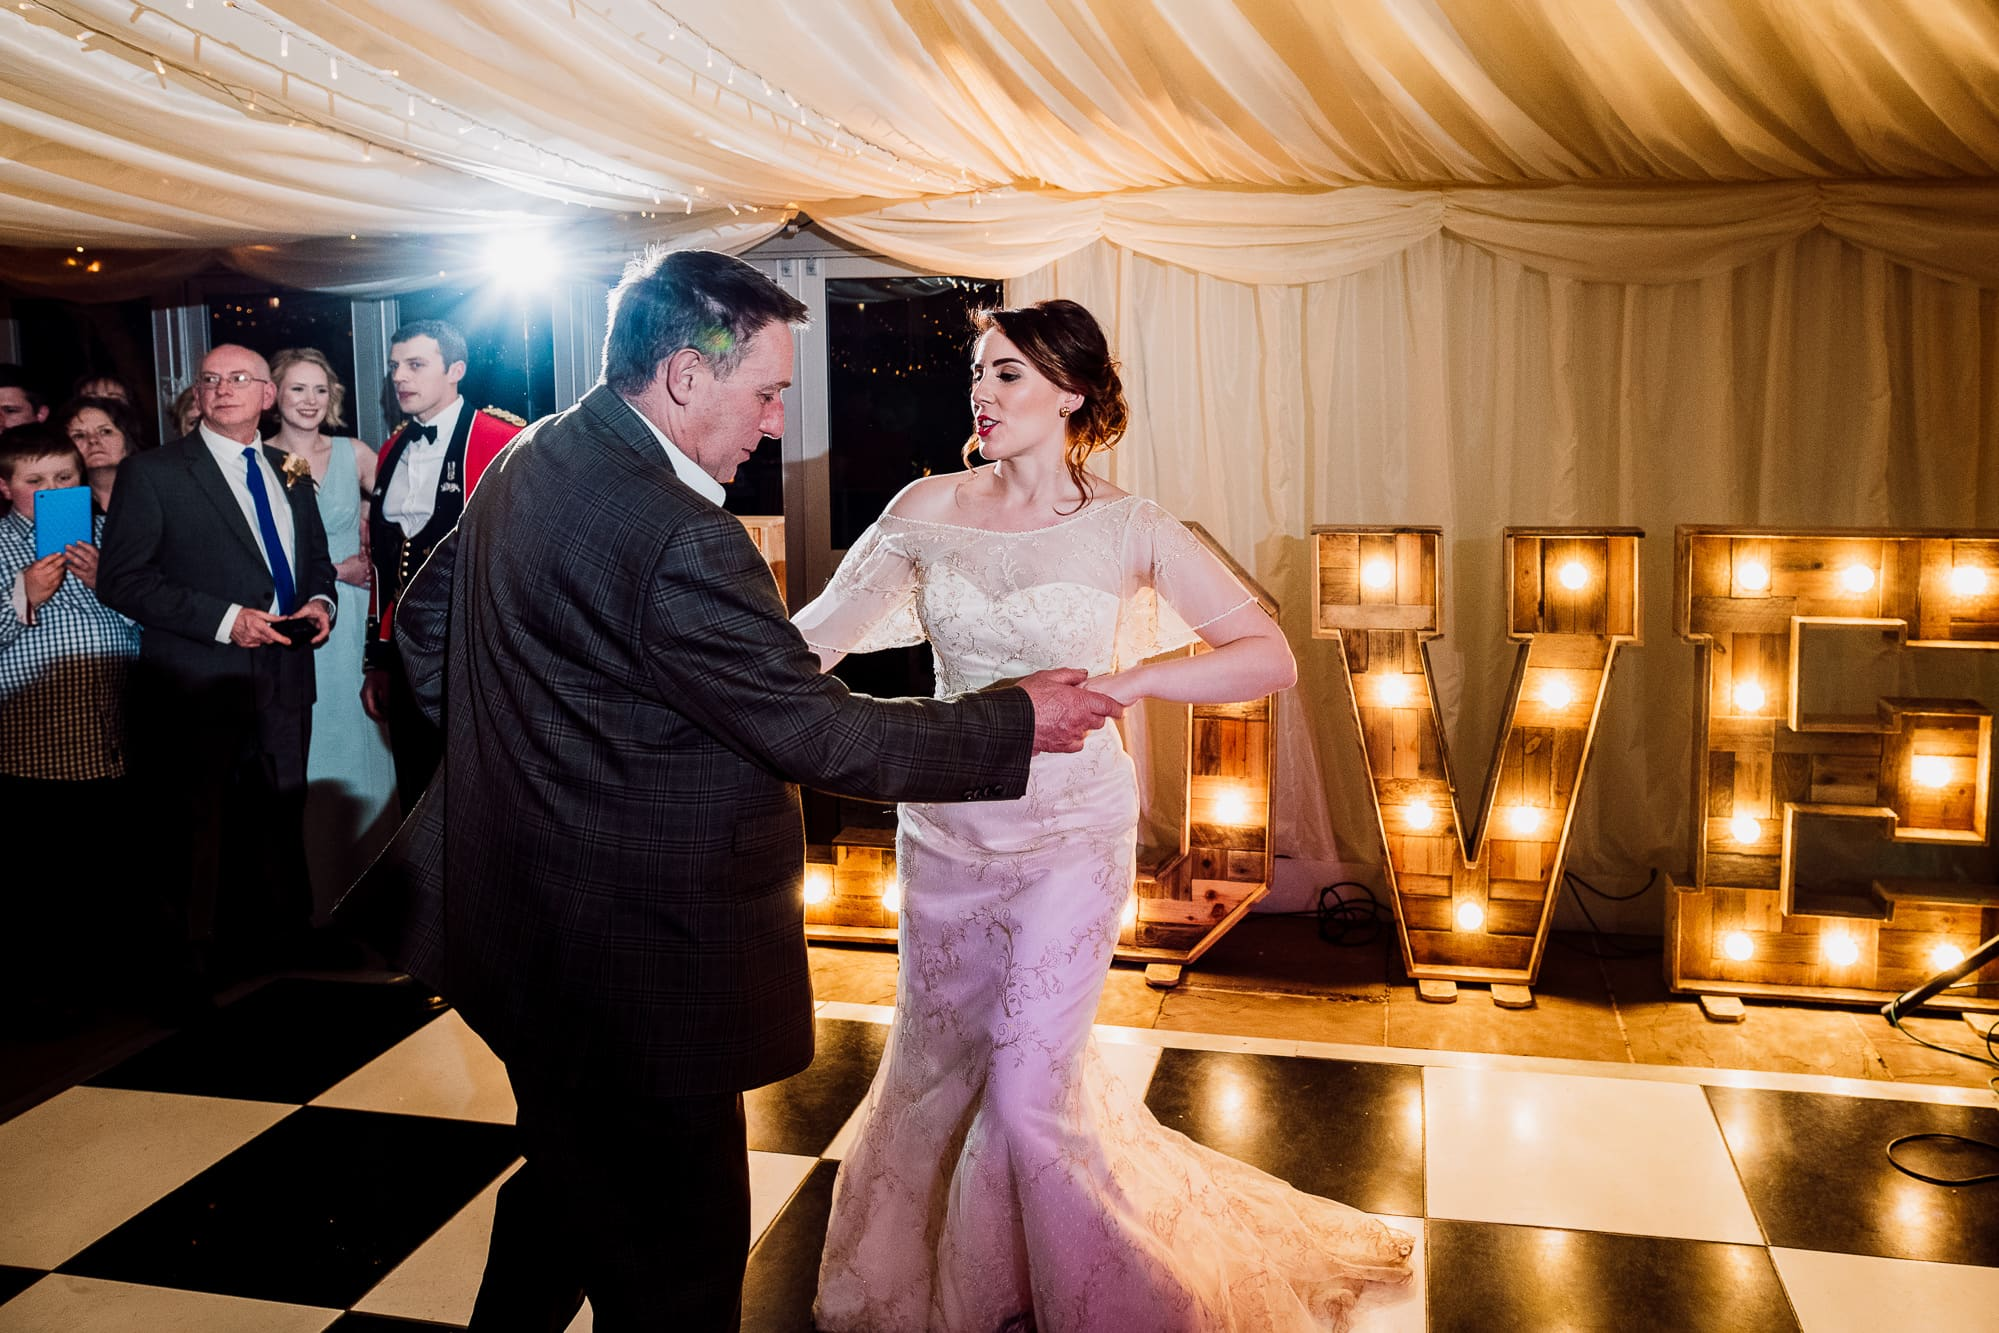 Father and daughter dance at the Inn at Whitewell